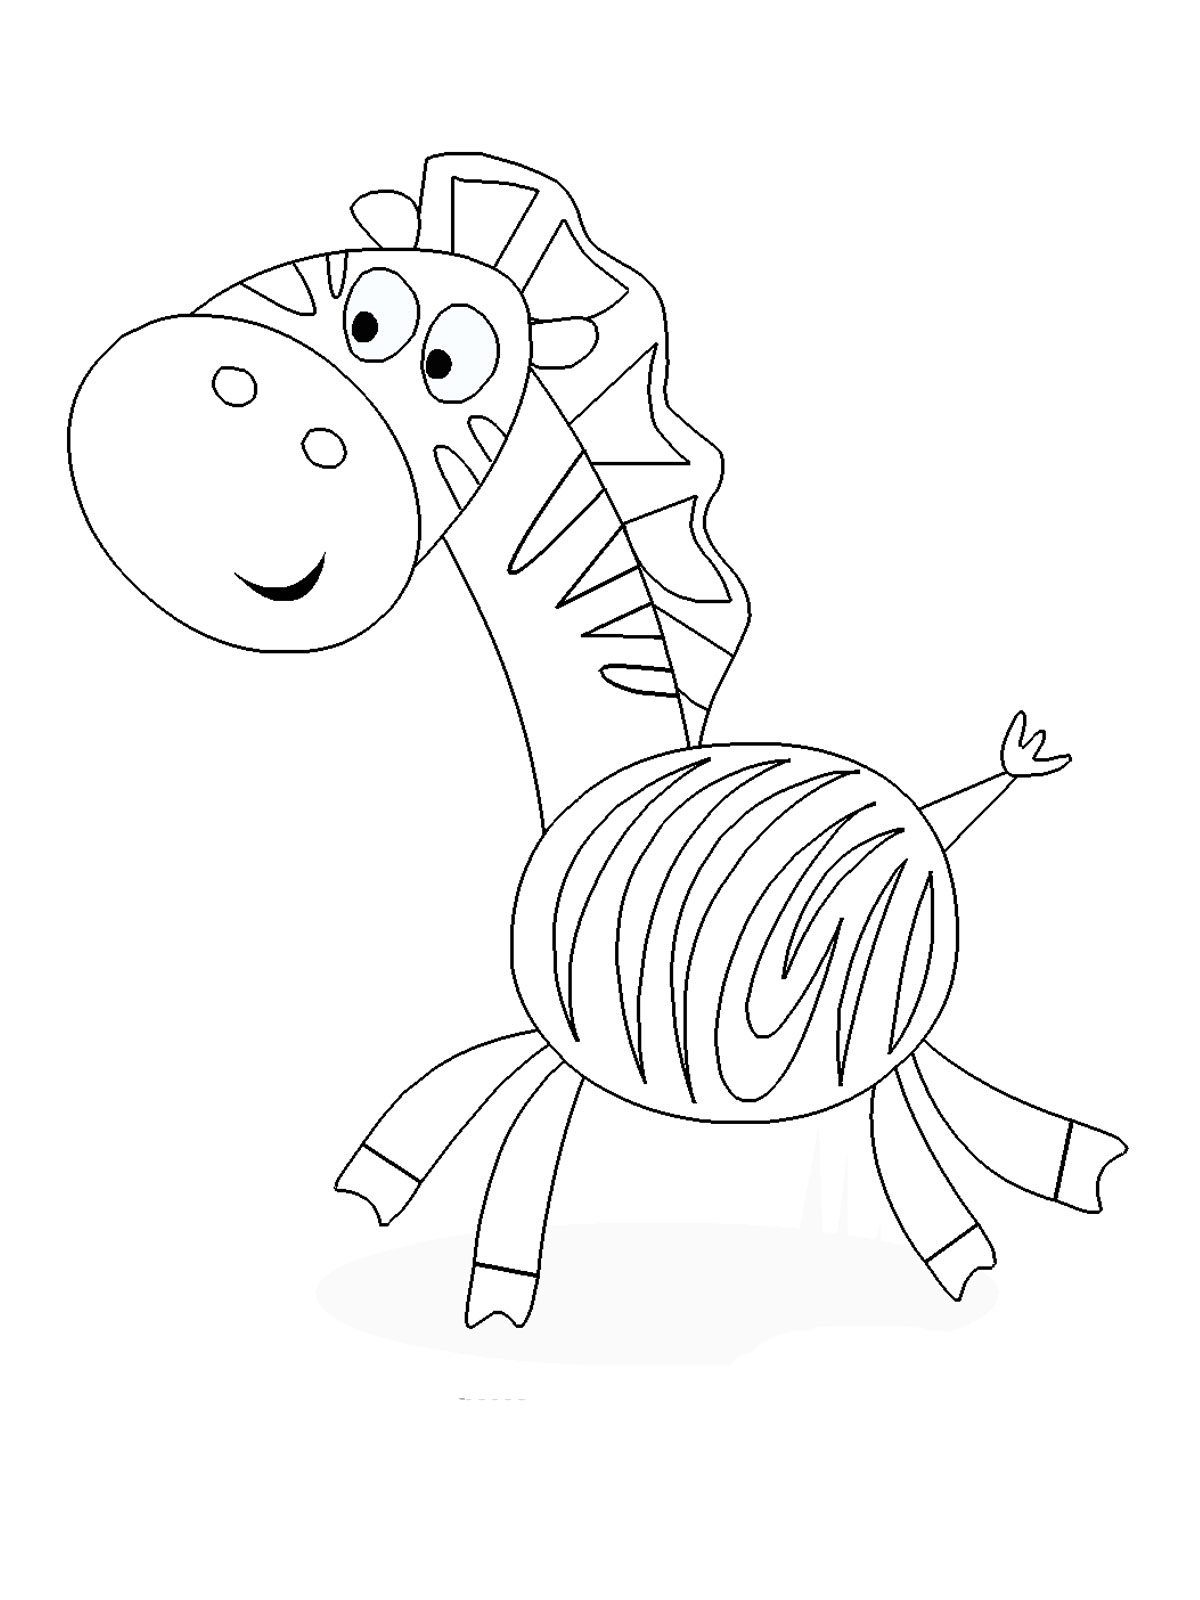 fun coloring pictures zebra coloring pages free printable kids coloring pages coloring pictures fun